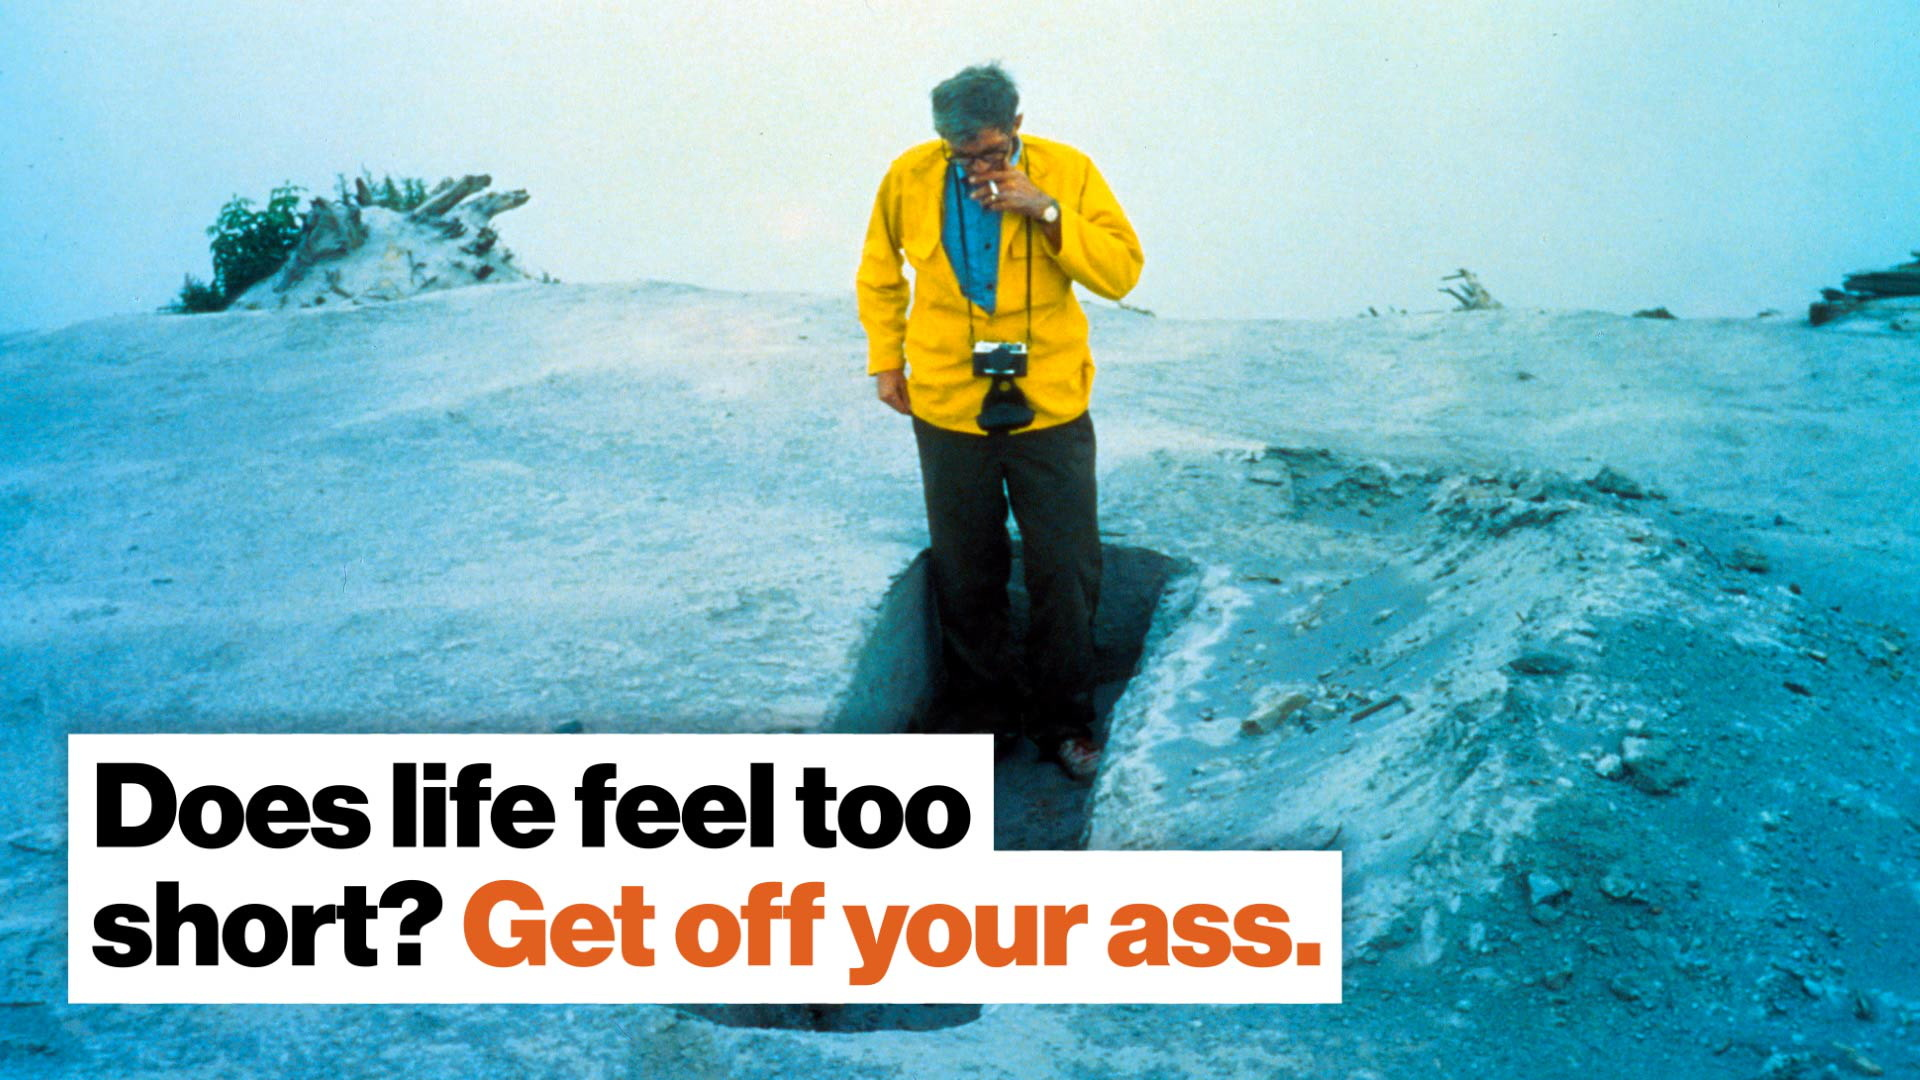 Does life feel too short? Get off your ass.